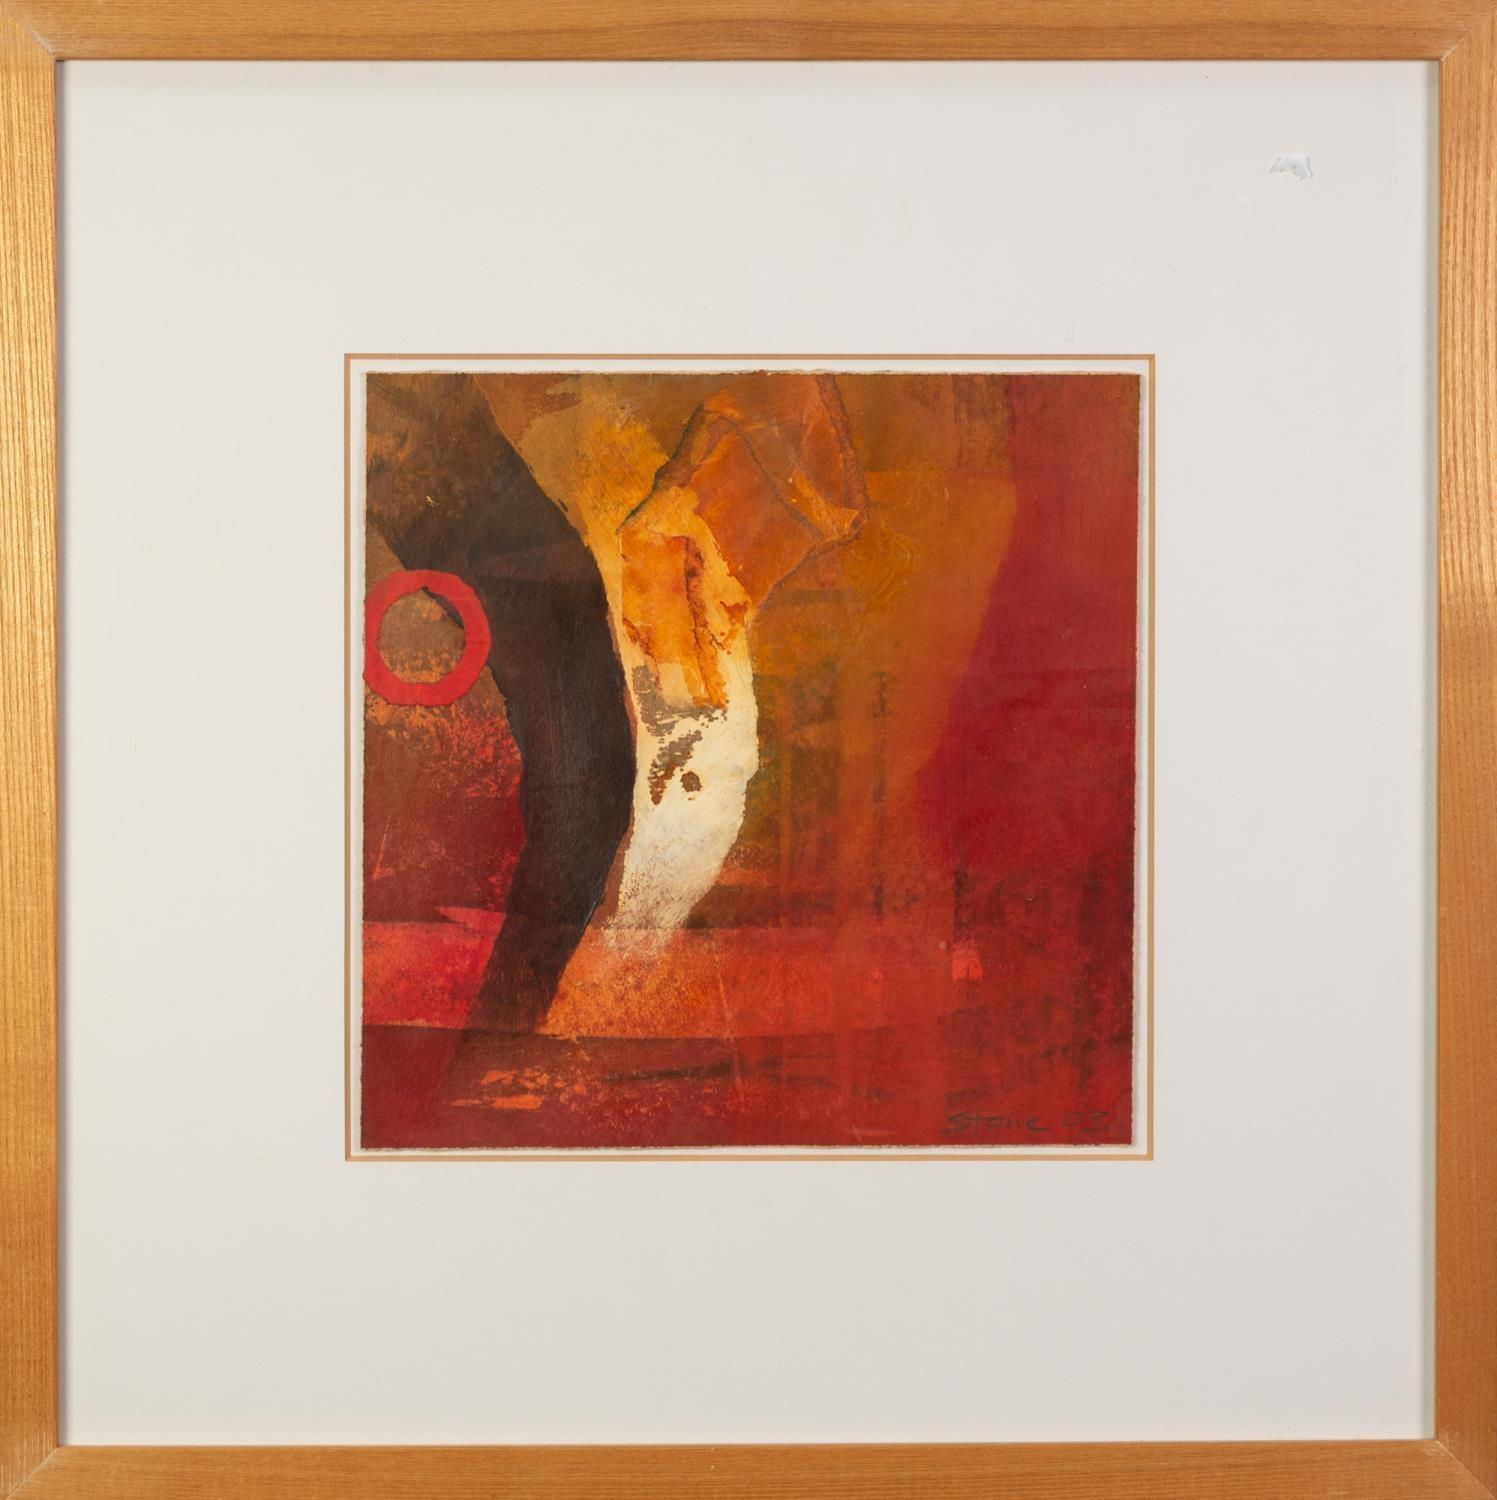 PAUL STONE (b.1938) MIXED MEDIA ON PAPER ?Measure? Signed and dated (20)03, titled verso 10? x - Image 2 of 2